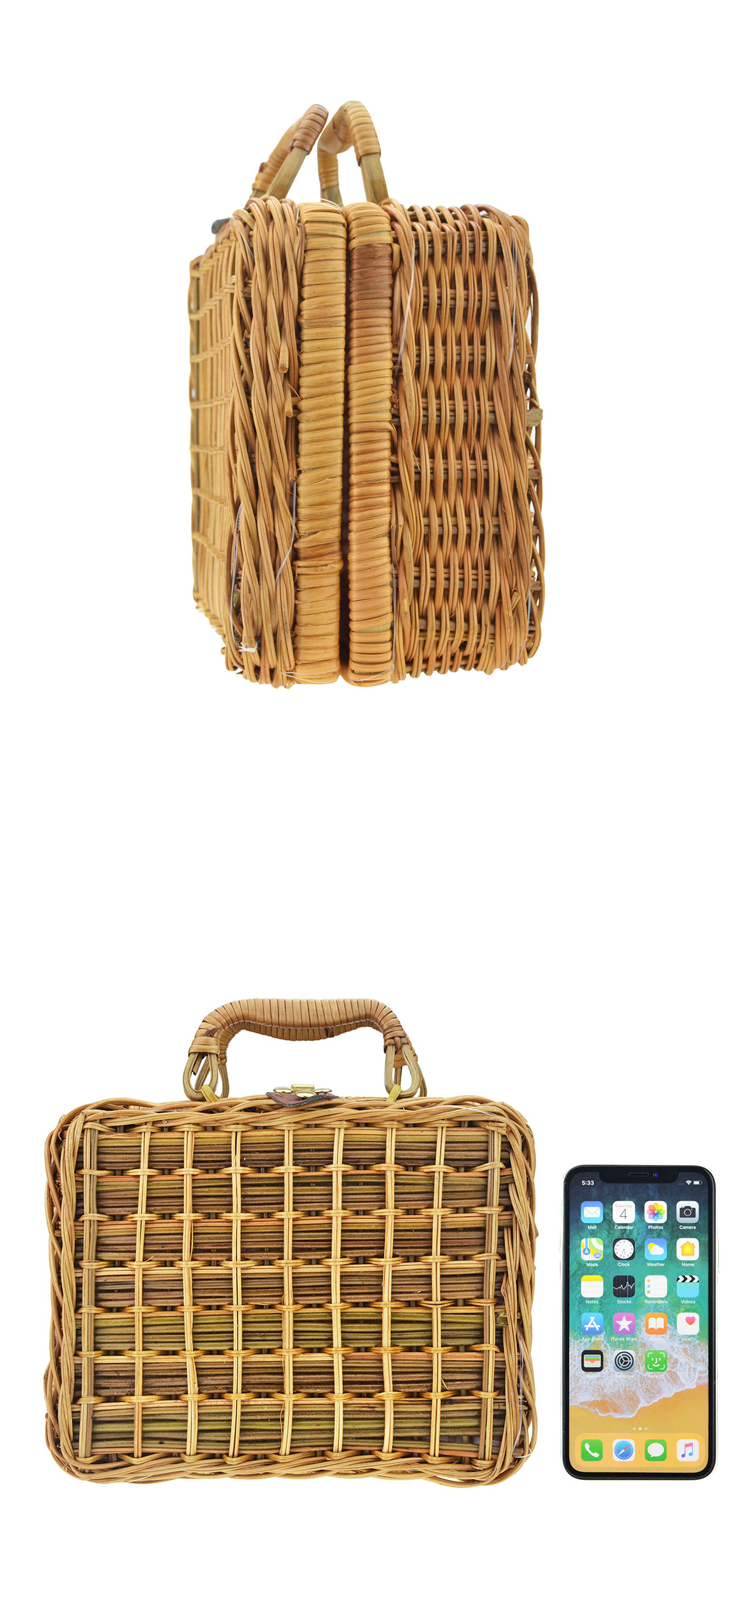 Home Organizer Handmade Woven Bali Bags Square Rattan Picnic Basket with Cover and Lock